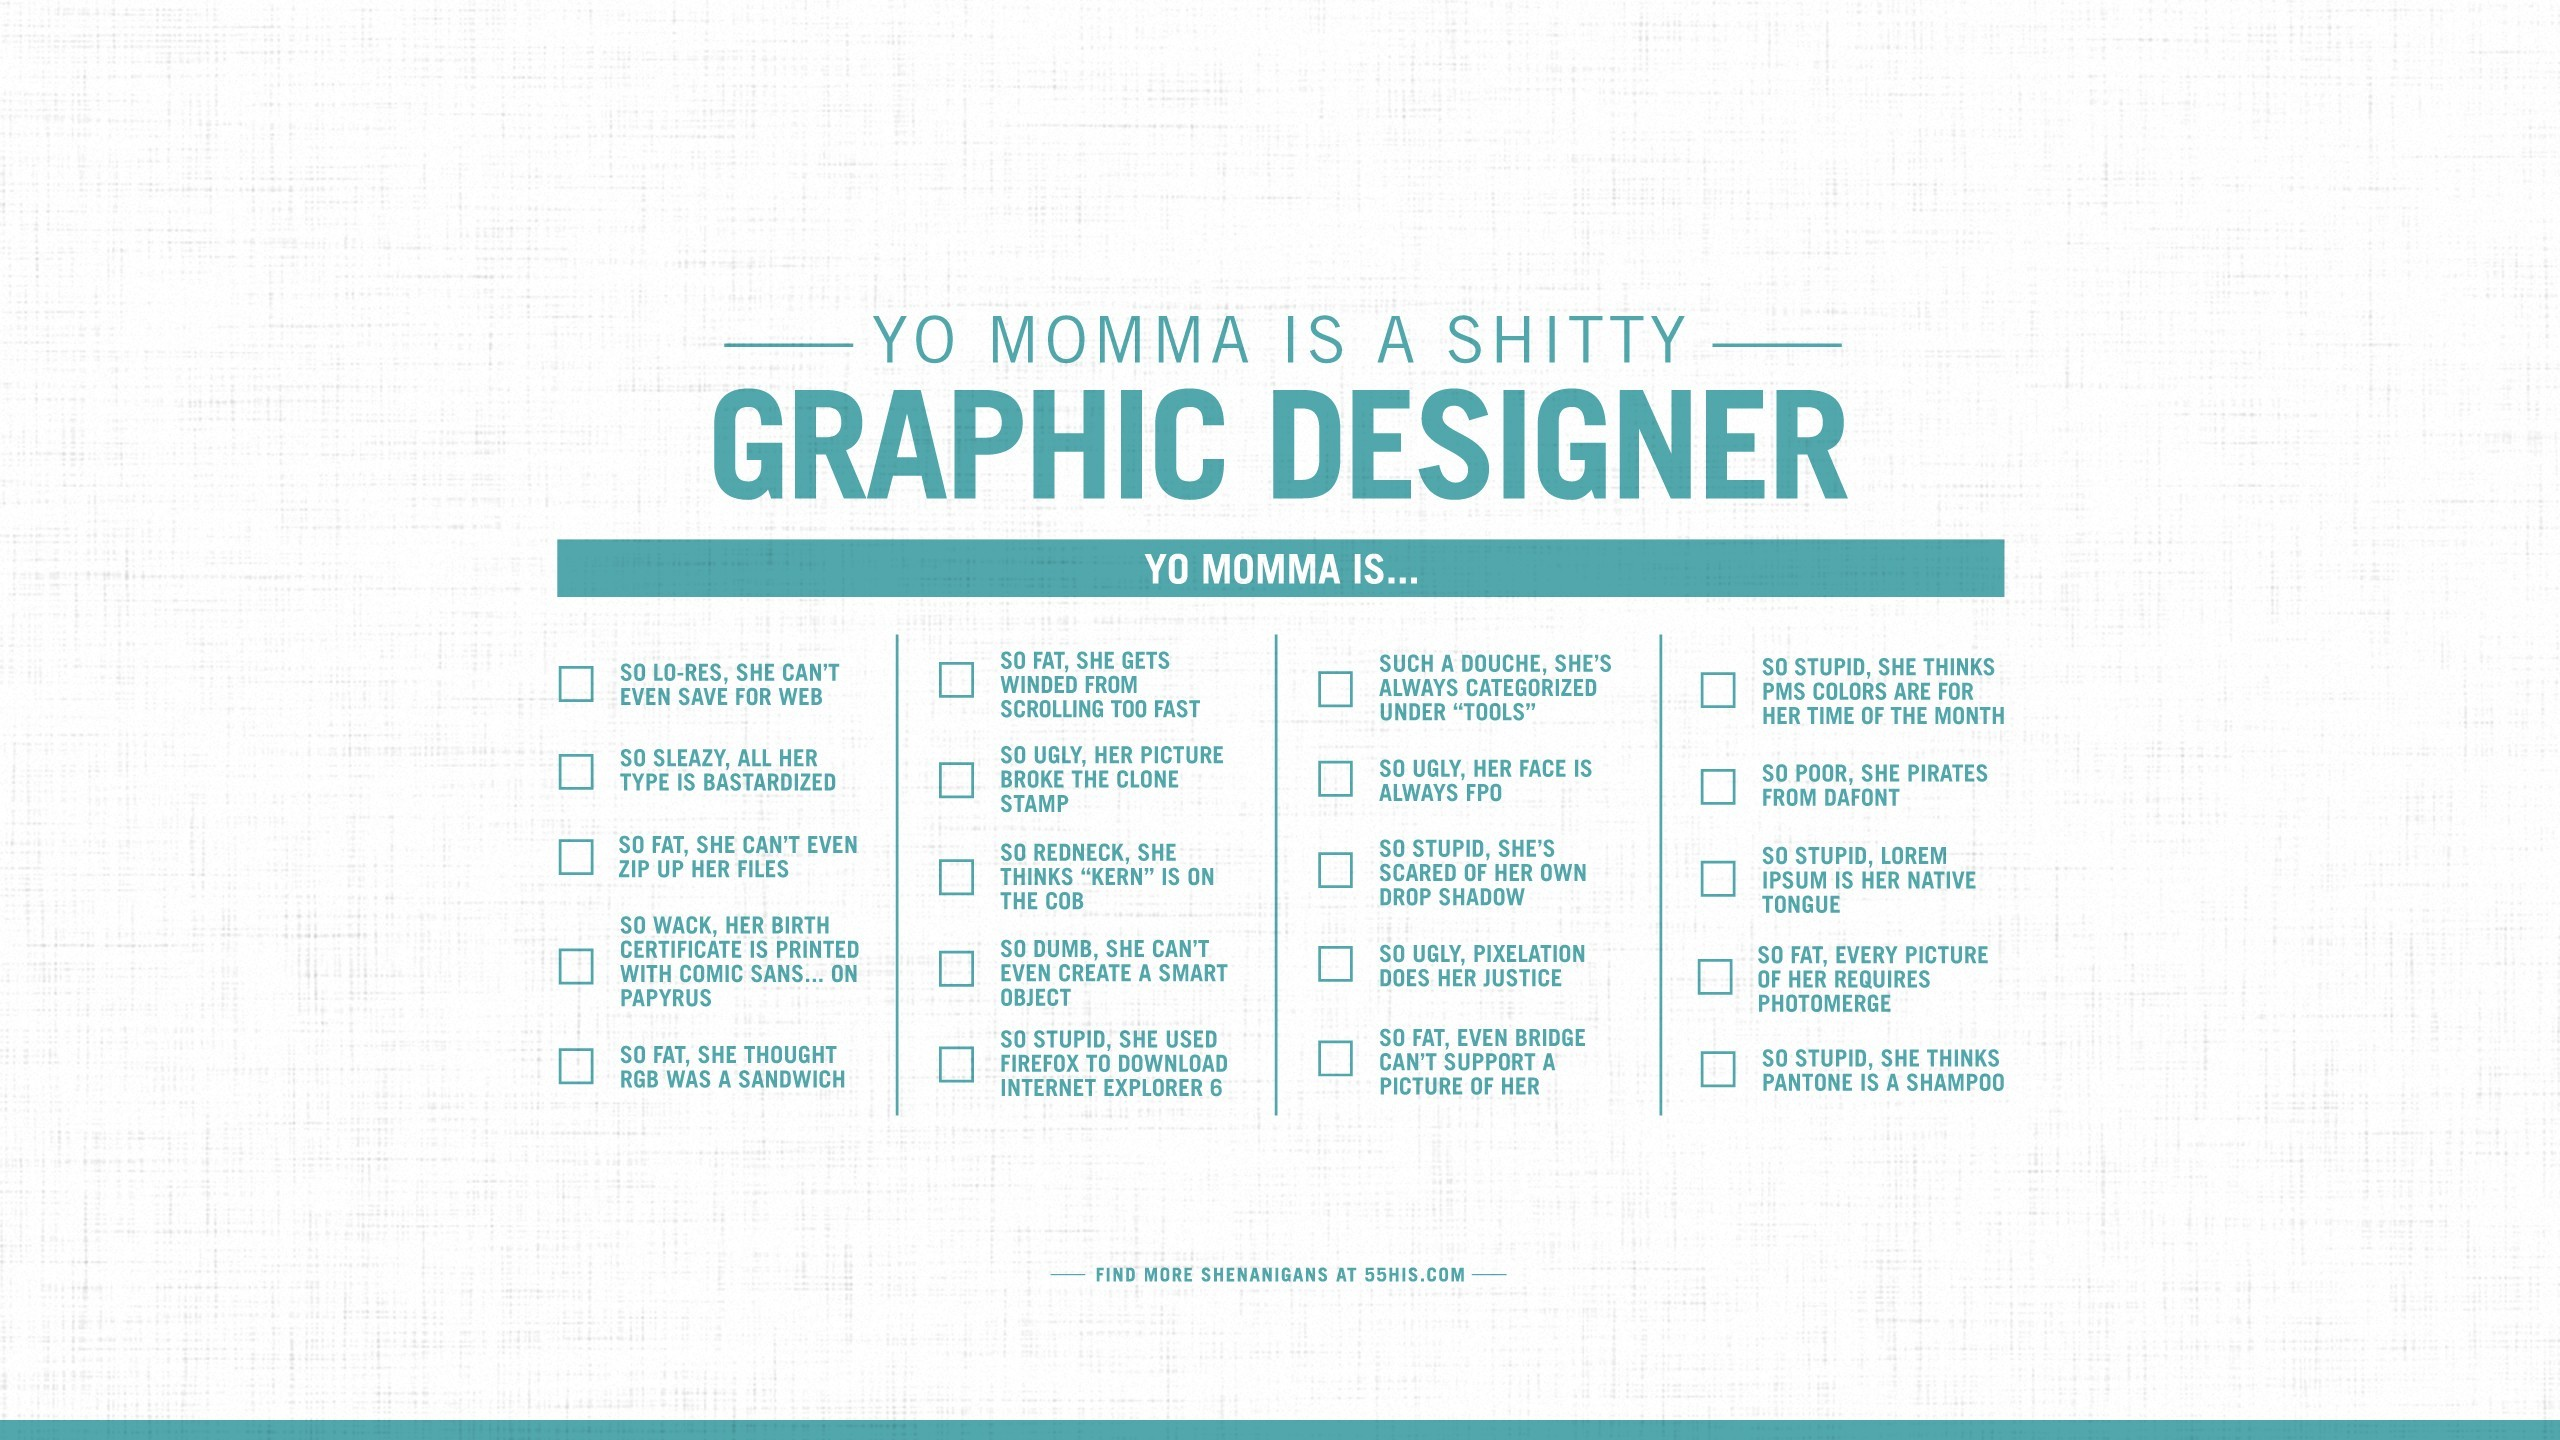 Yo Momma is a shitty Graphic Designer.jpg